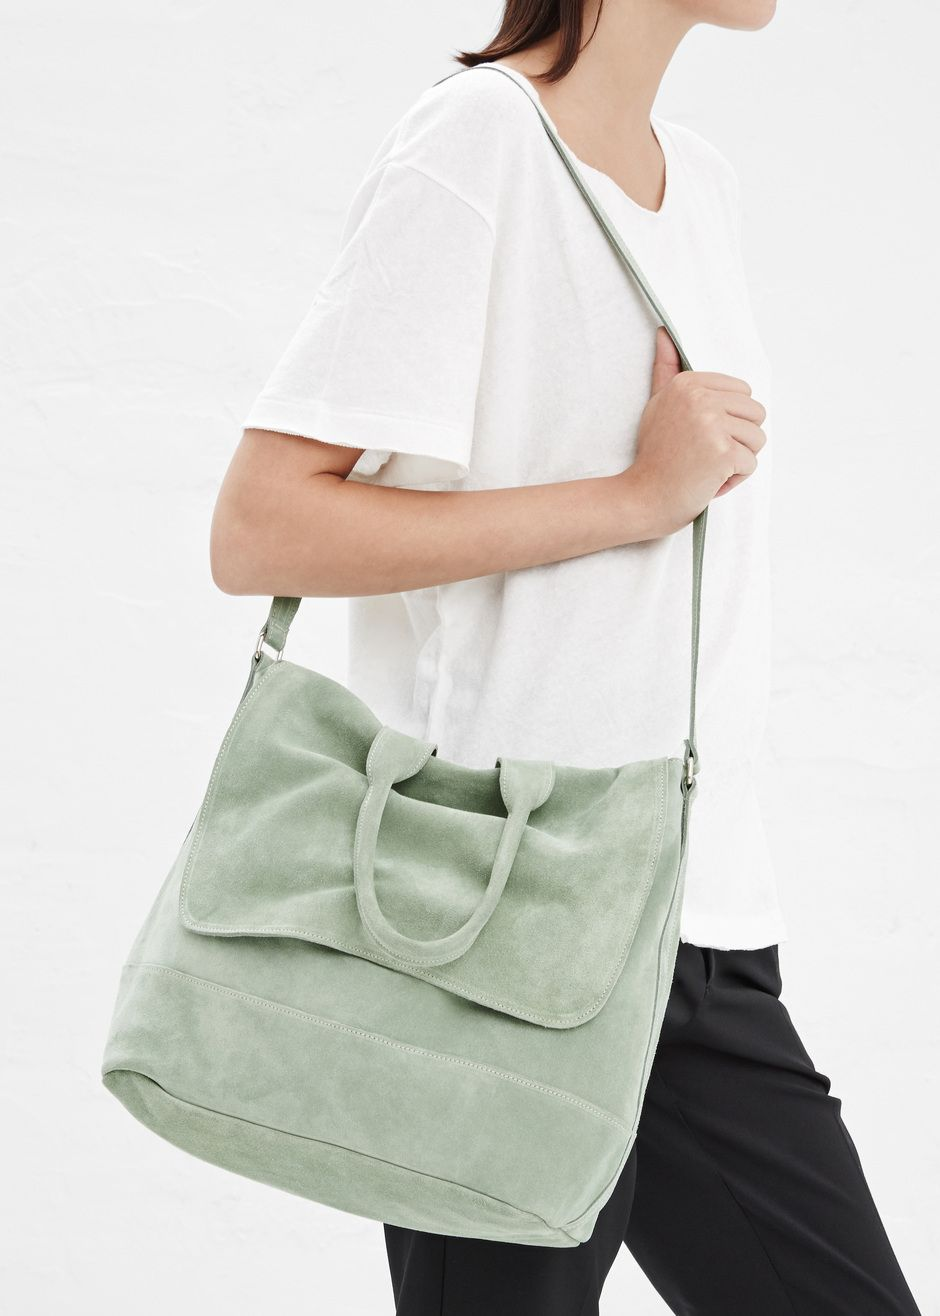 Clyde Suede Tote Bag In Mint